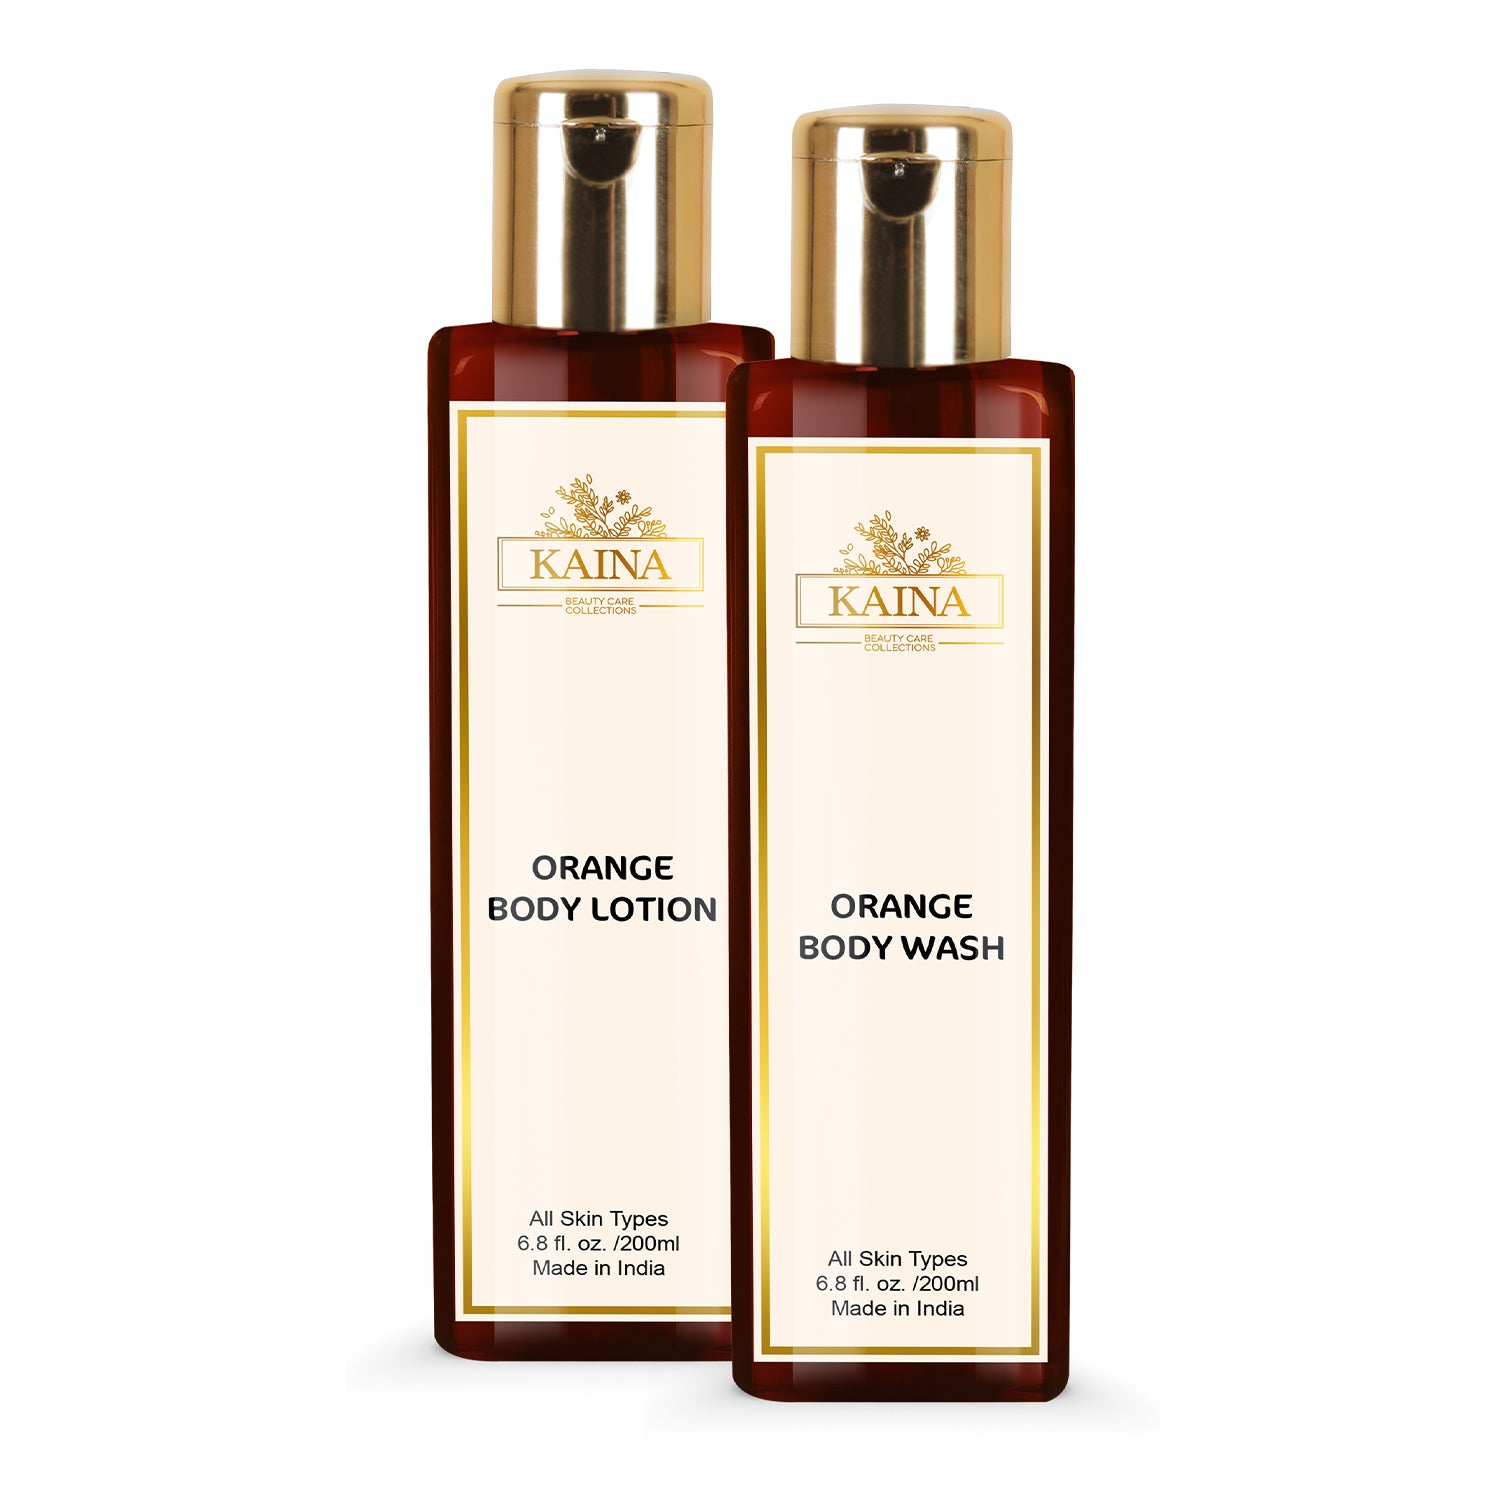 Kaina Skincare Orange Combo Set of 2 | Body Lotion 200 ml & Body Wash 200 ml | Skin Conditioner and Orange Cleansing